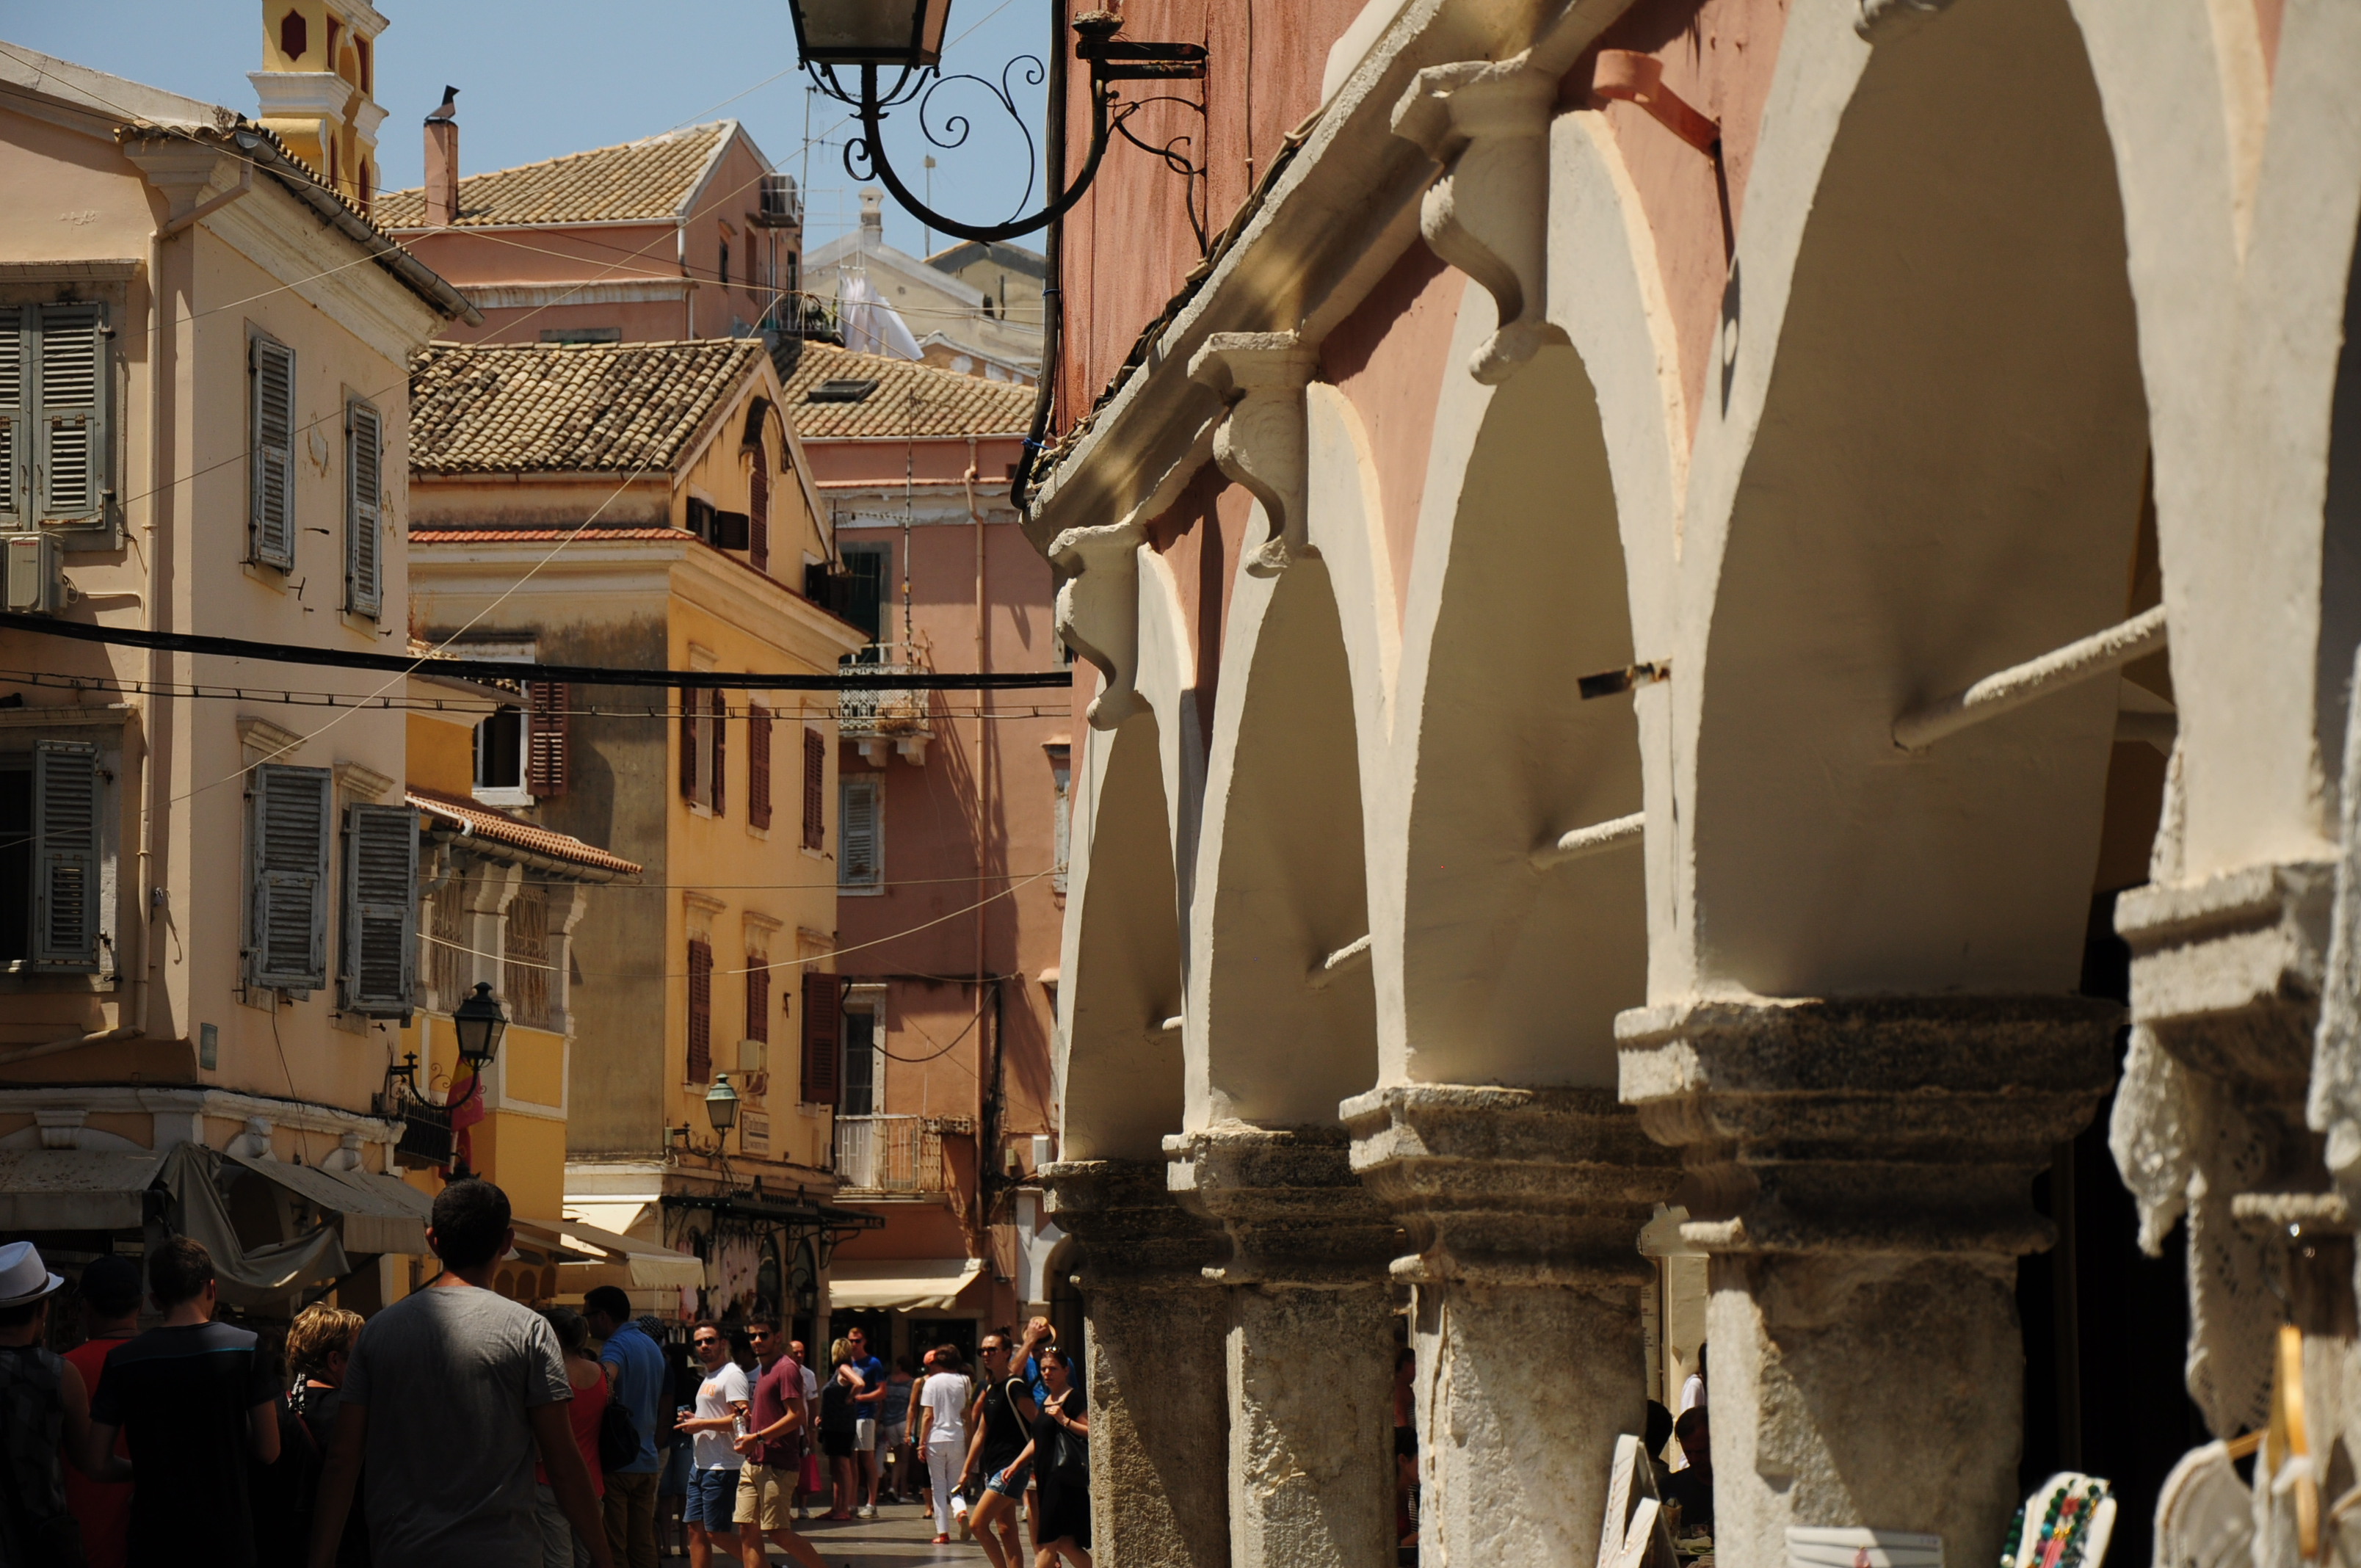 The old town has so much more than just souvenir stores